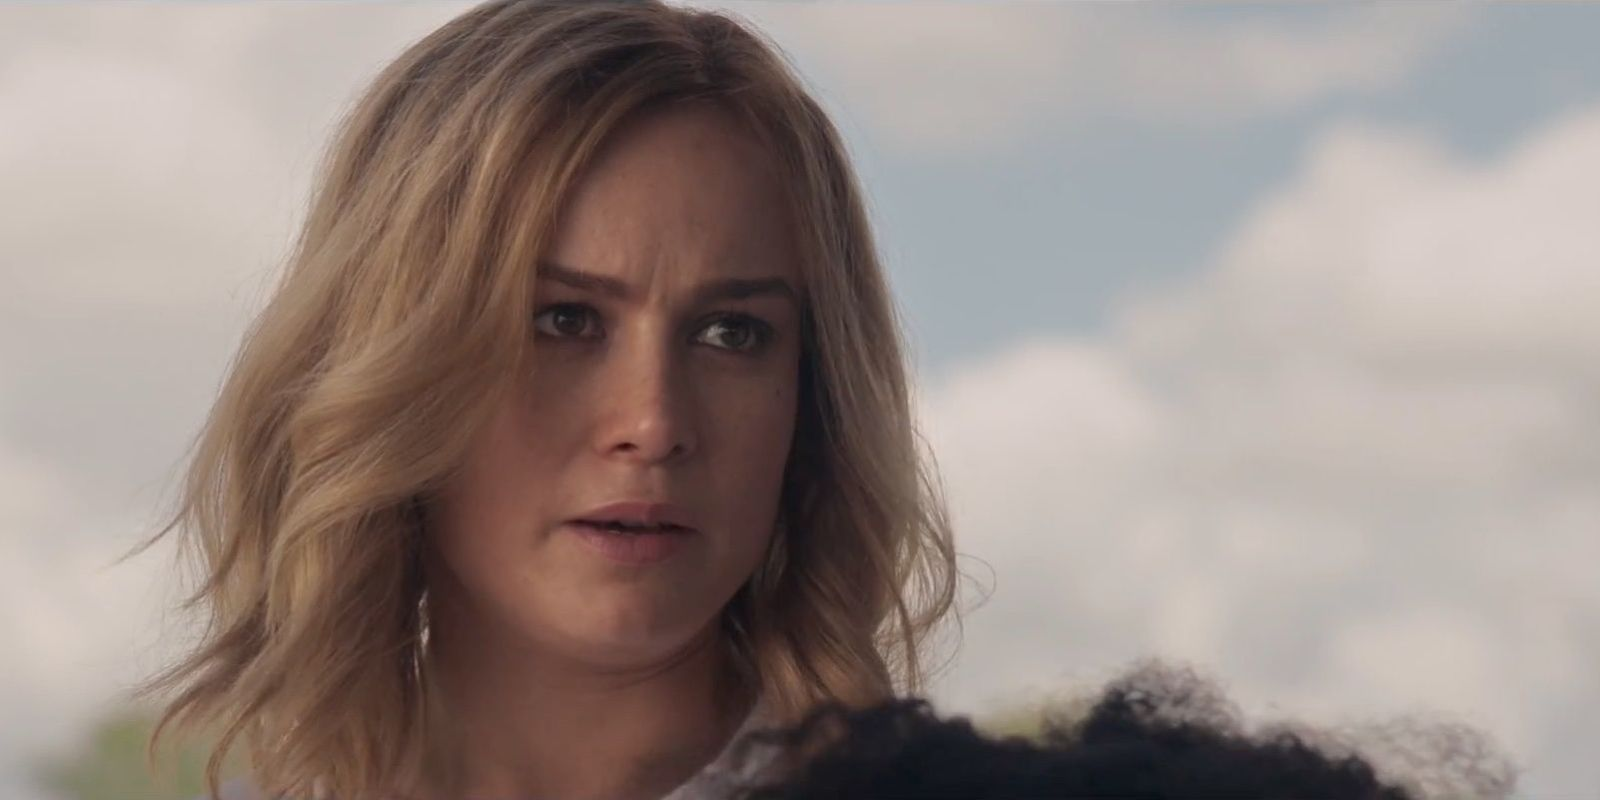 Who is the real villain in Captain Marvel?